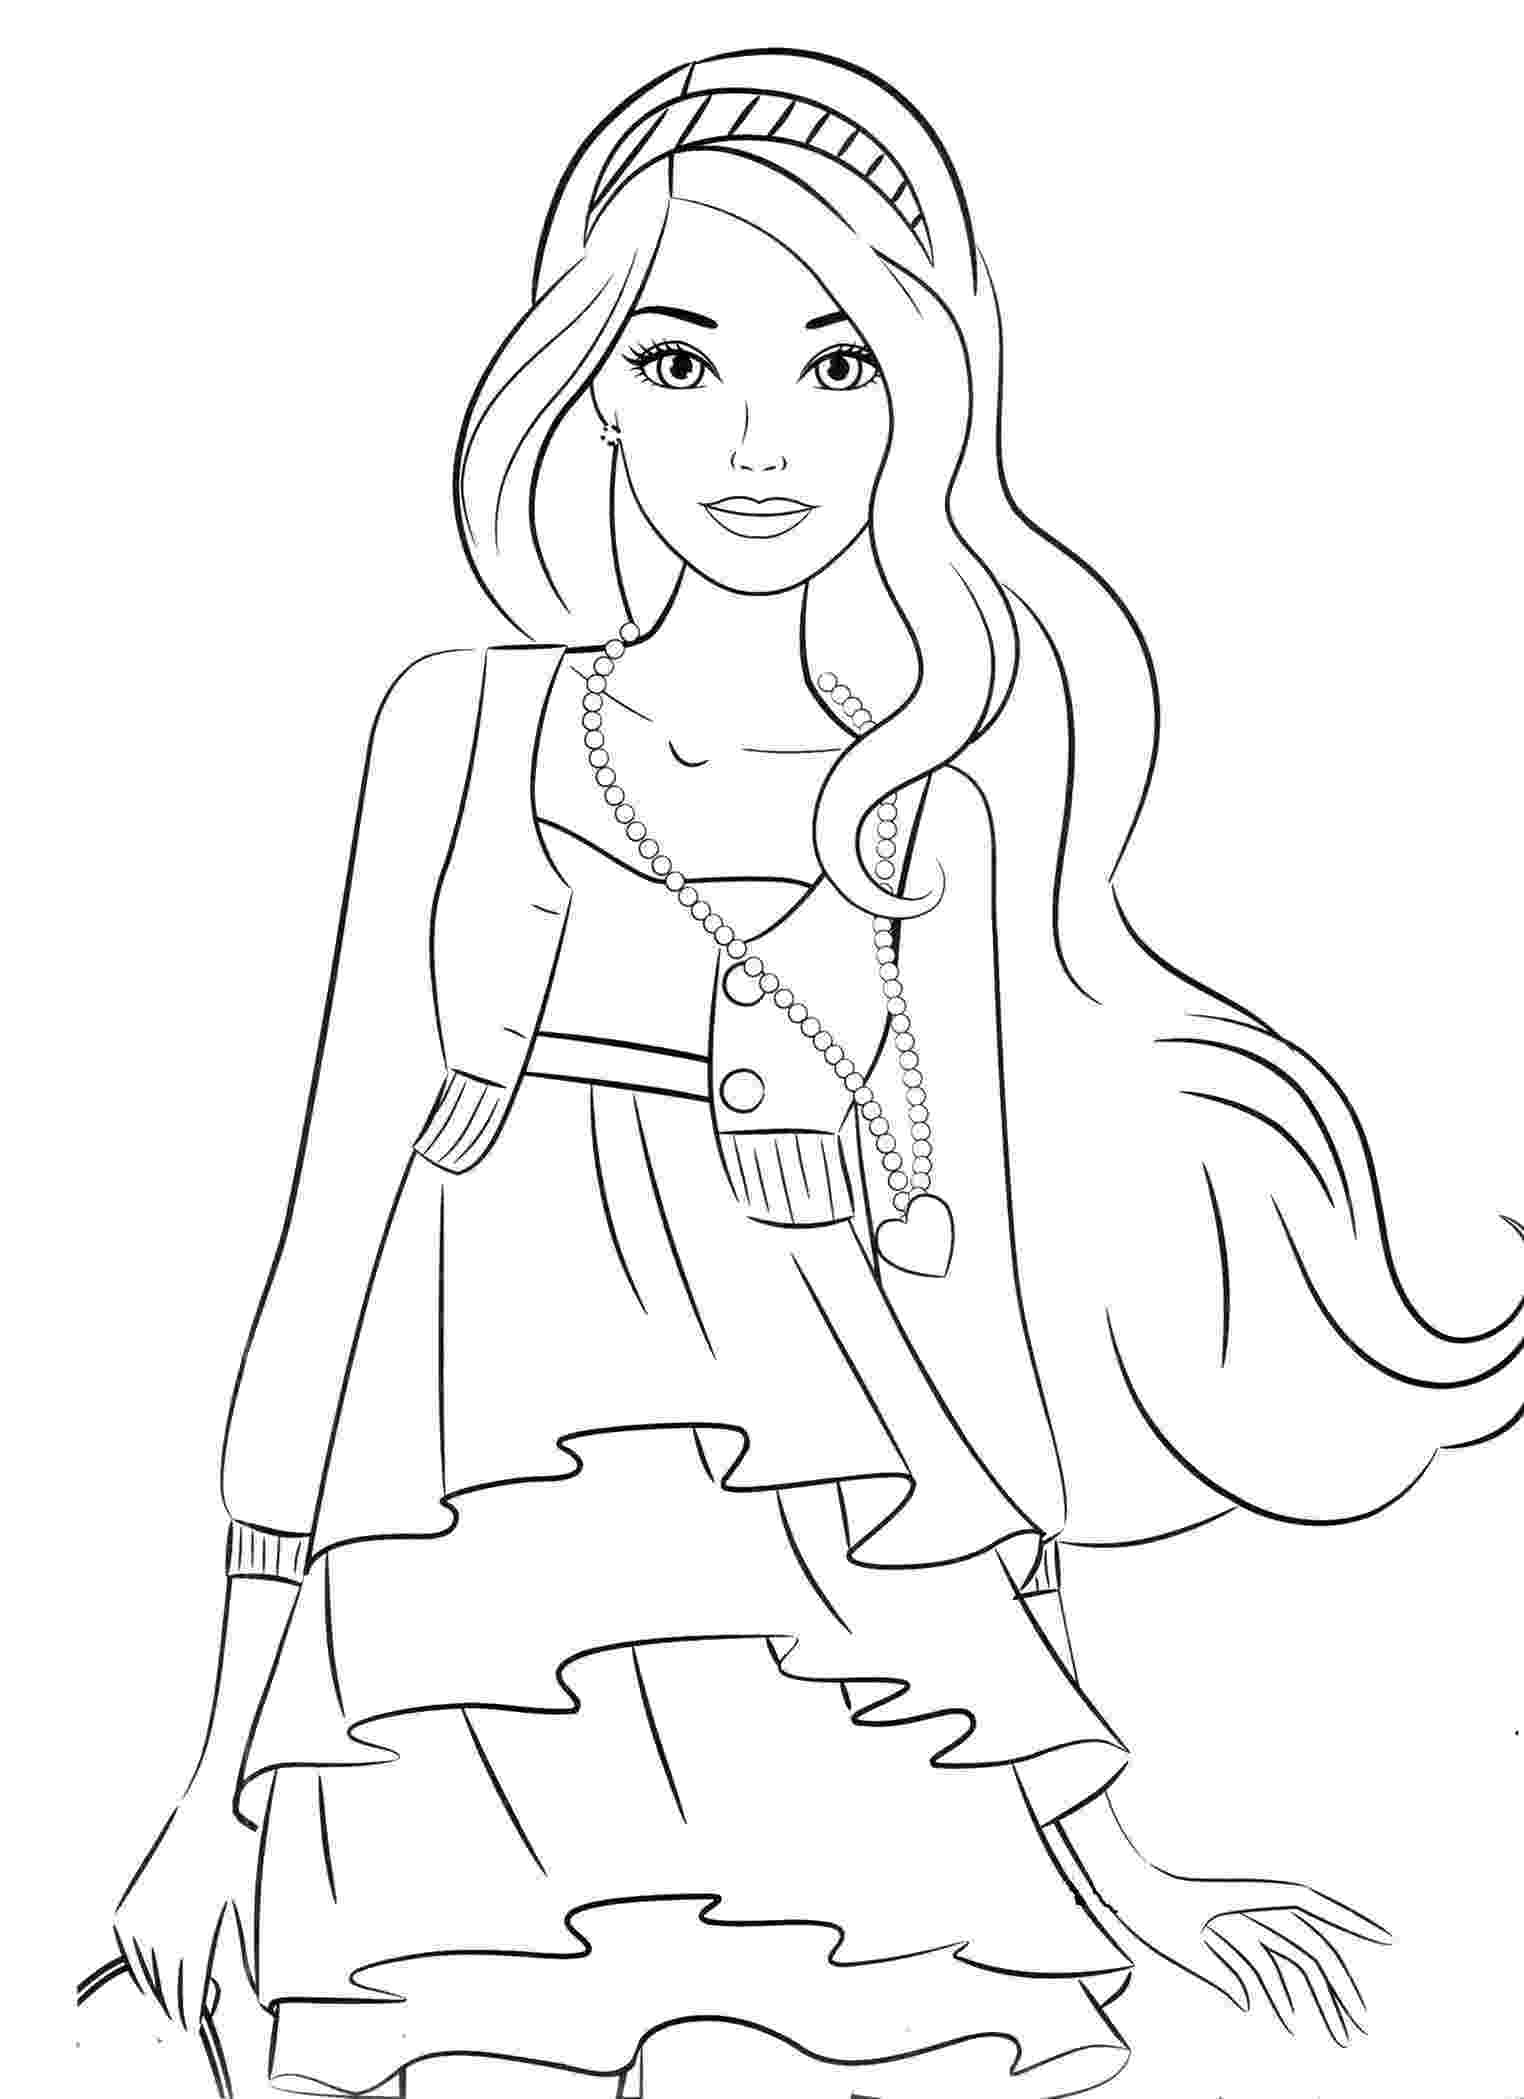 colering pages for girls 15 printable my little pony equestria girls coloring pages for colering pages girls